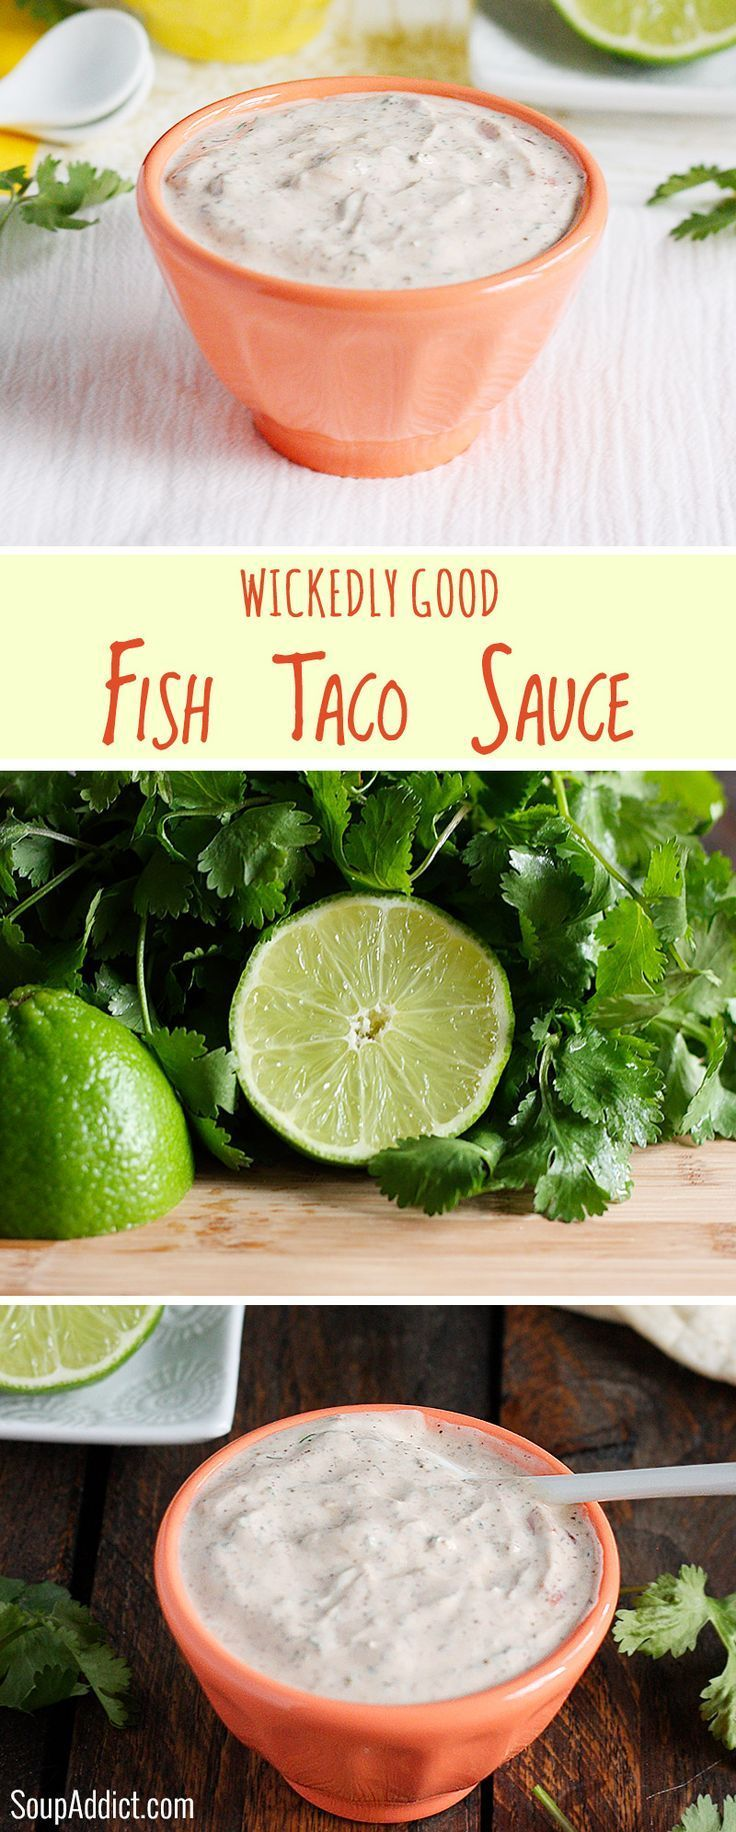 Wickedly Good Fish Taco Sauce | SoupAddict.com - the very best white sauce for your fish tacos and taco bar party!